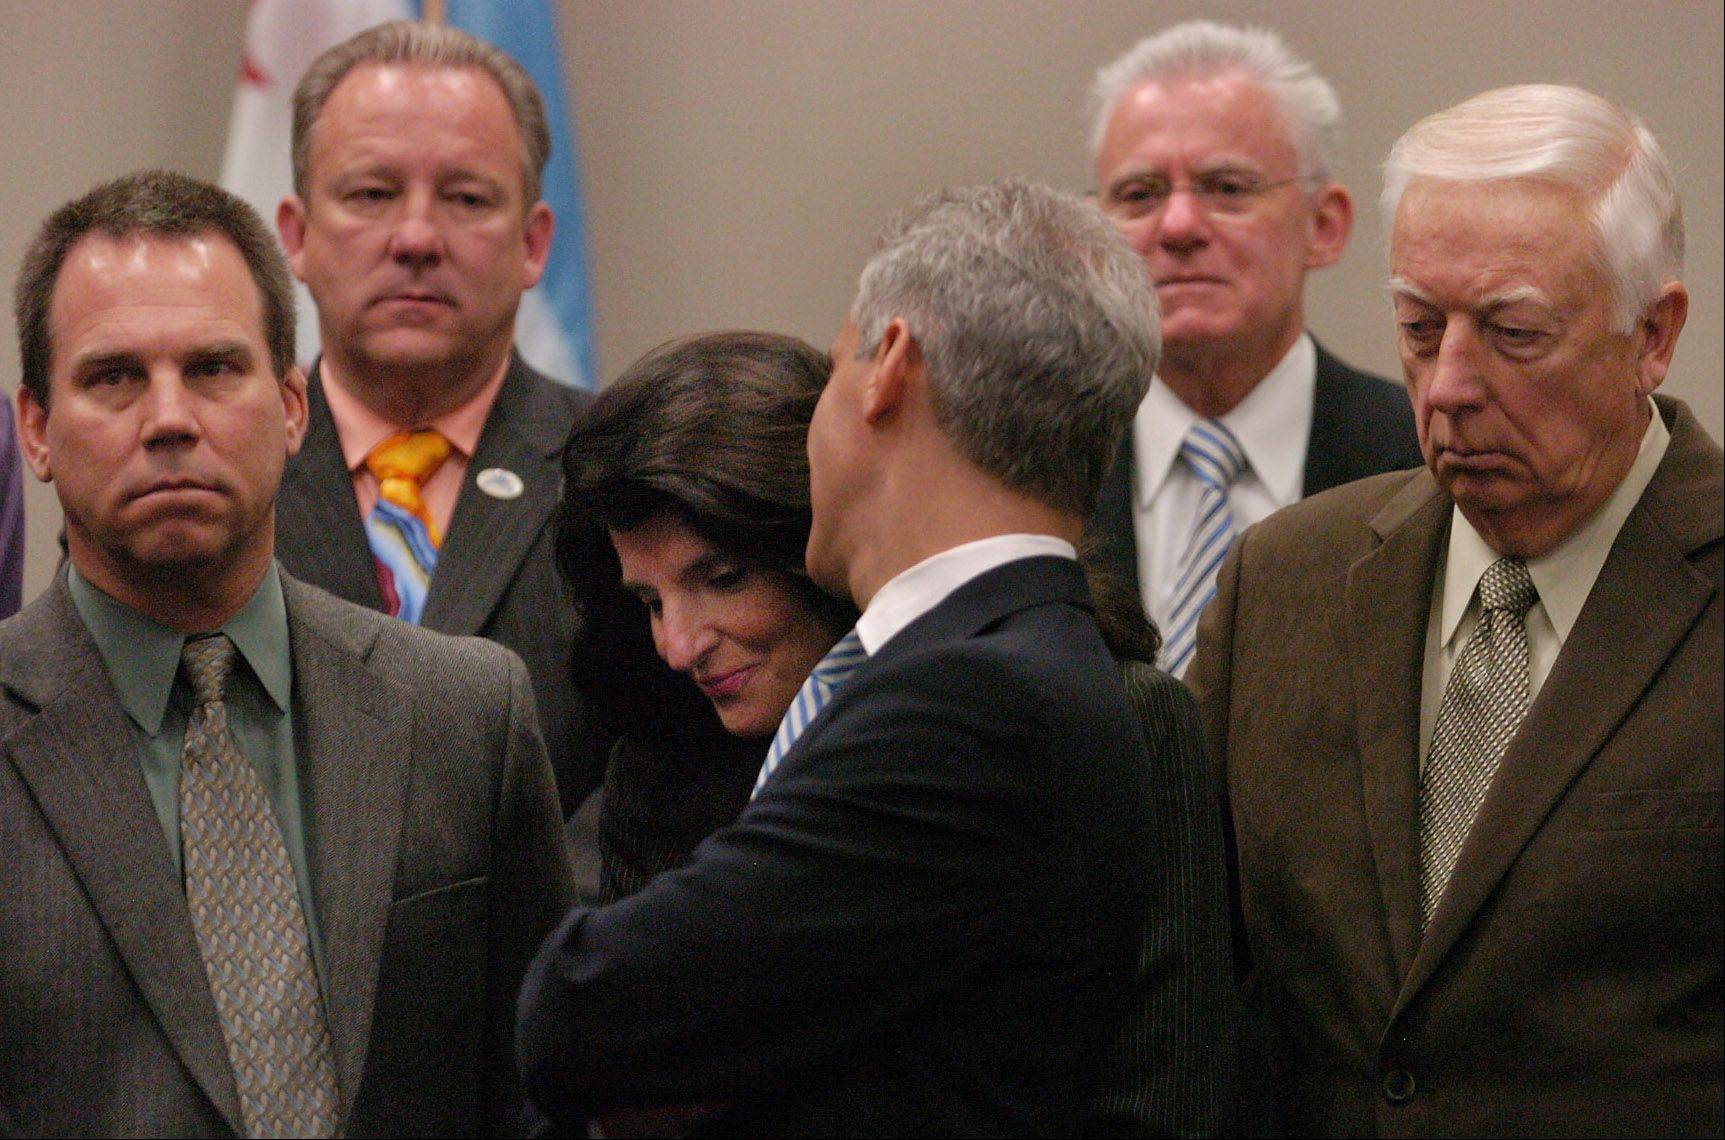 Chicago Mayor Rahm Emanuel shares a laugh with Barrington mayor Karen Darch during press conference with suburban mayors last year advocating for pension reform. Itasca mayor Jefff Pruyn is on the left, and Addison mayor Larry Hartwig is on the right.